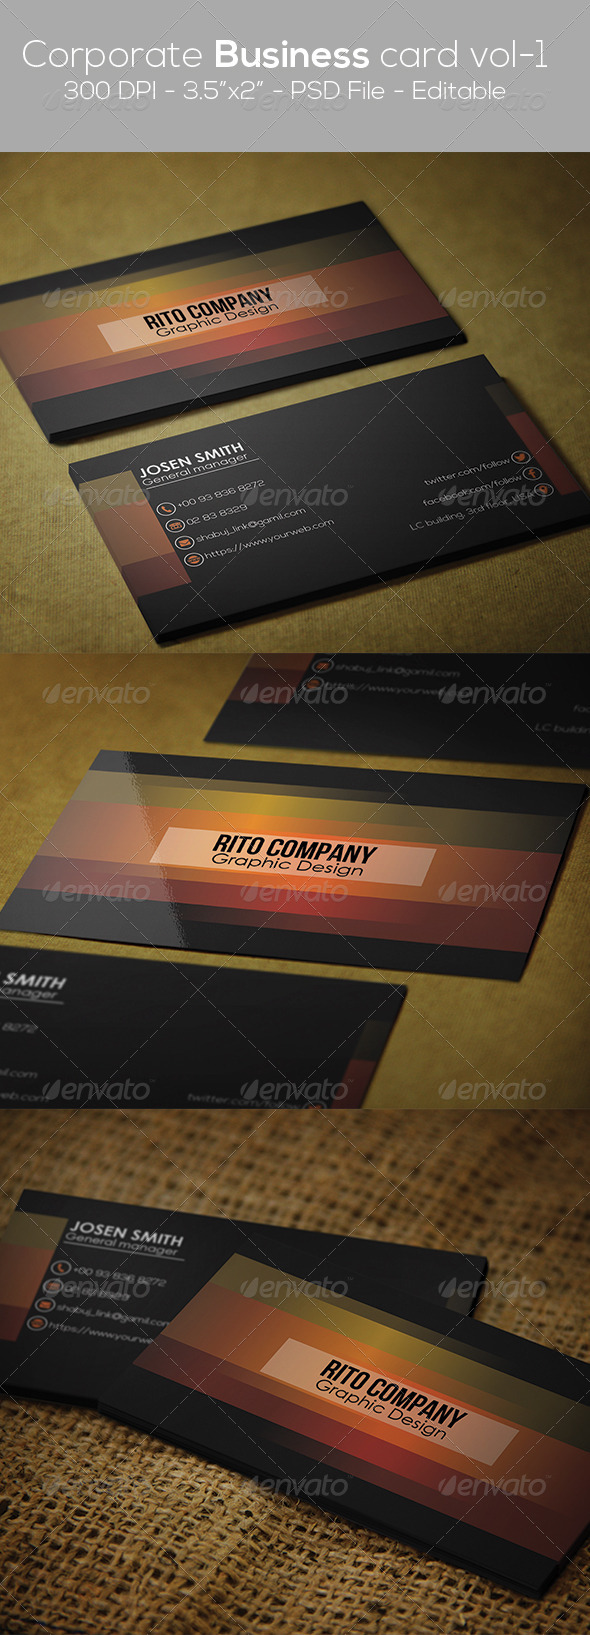 GraphicRiver Corporate Business Card Vol 01 8064993